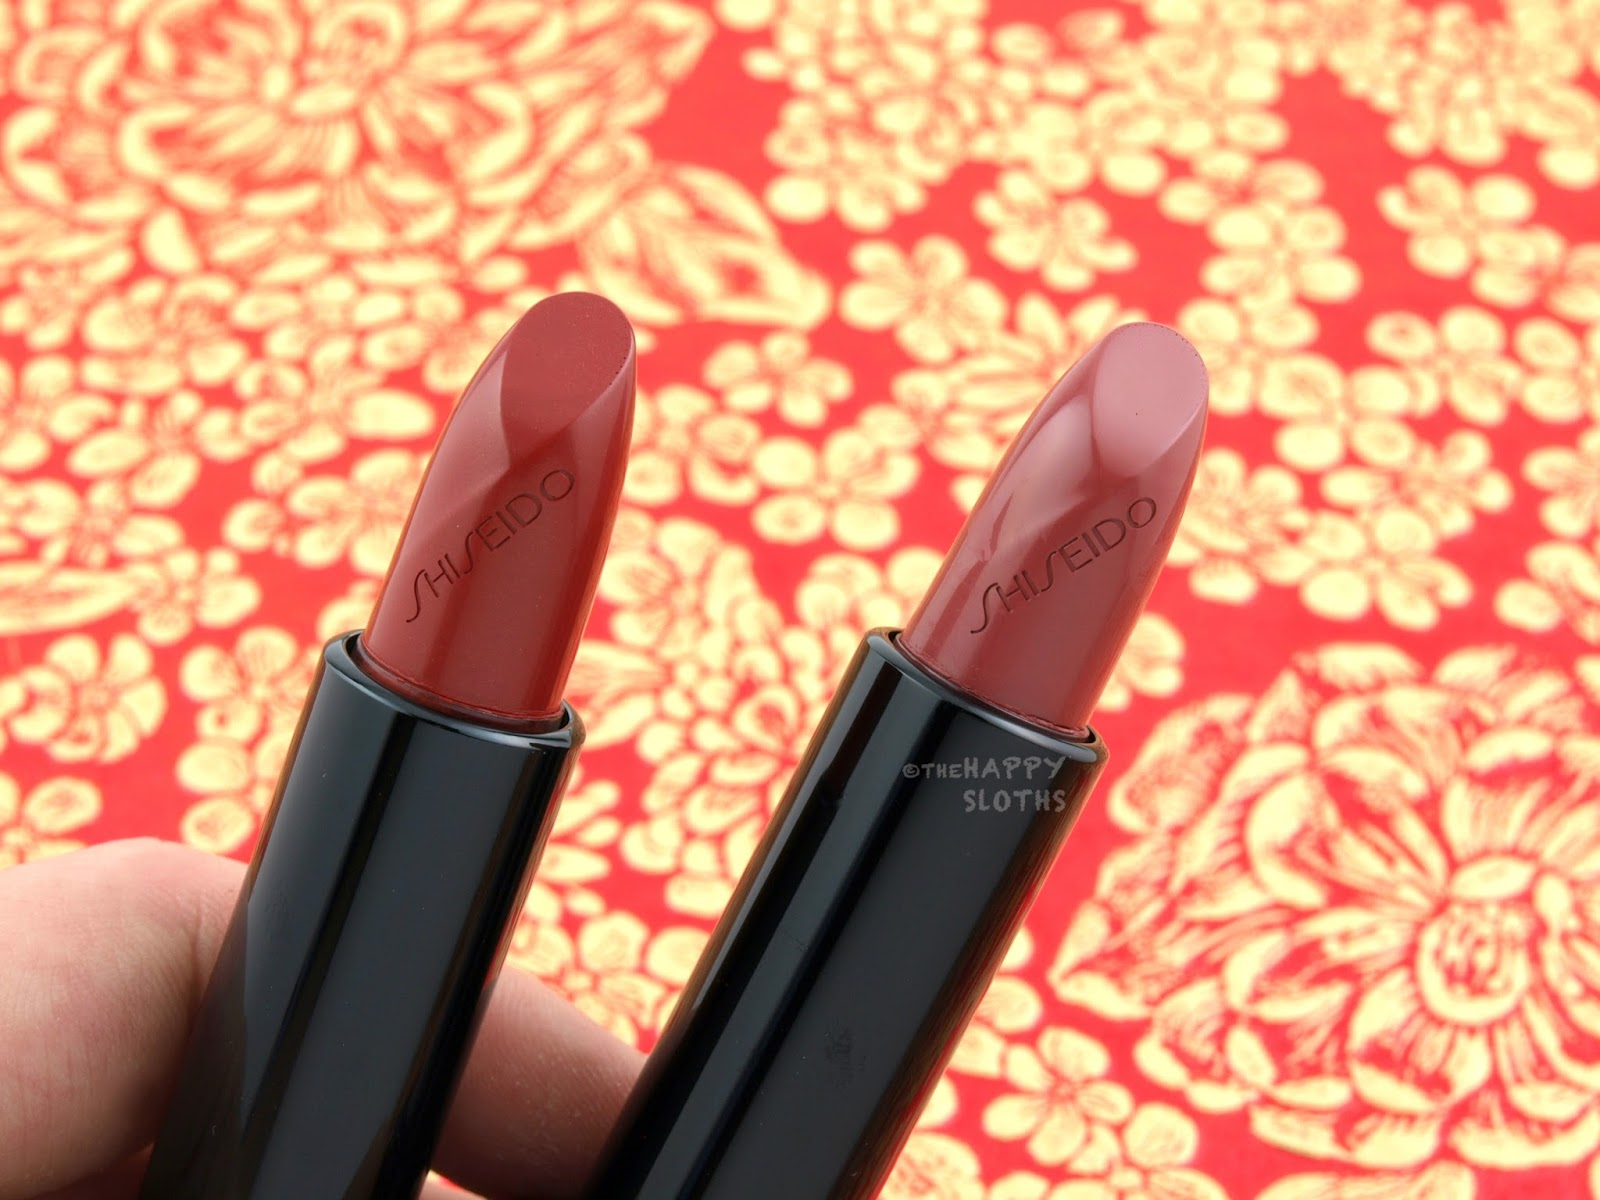 Shiseido Rouge Rouge Lipstick | Crushed Rose & Real Ruby: Review and Swatches